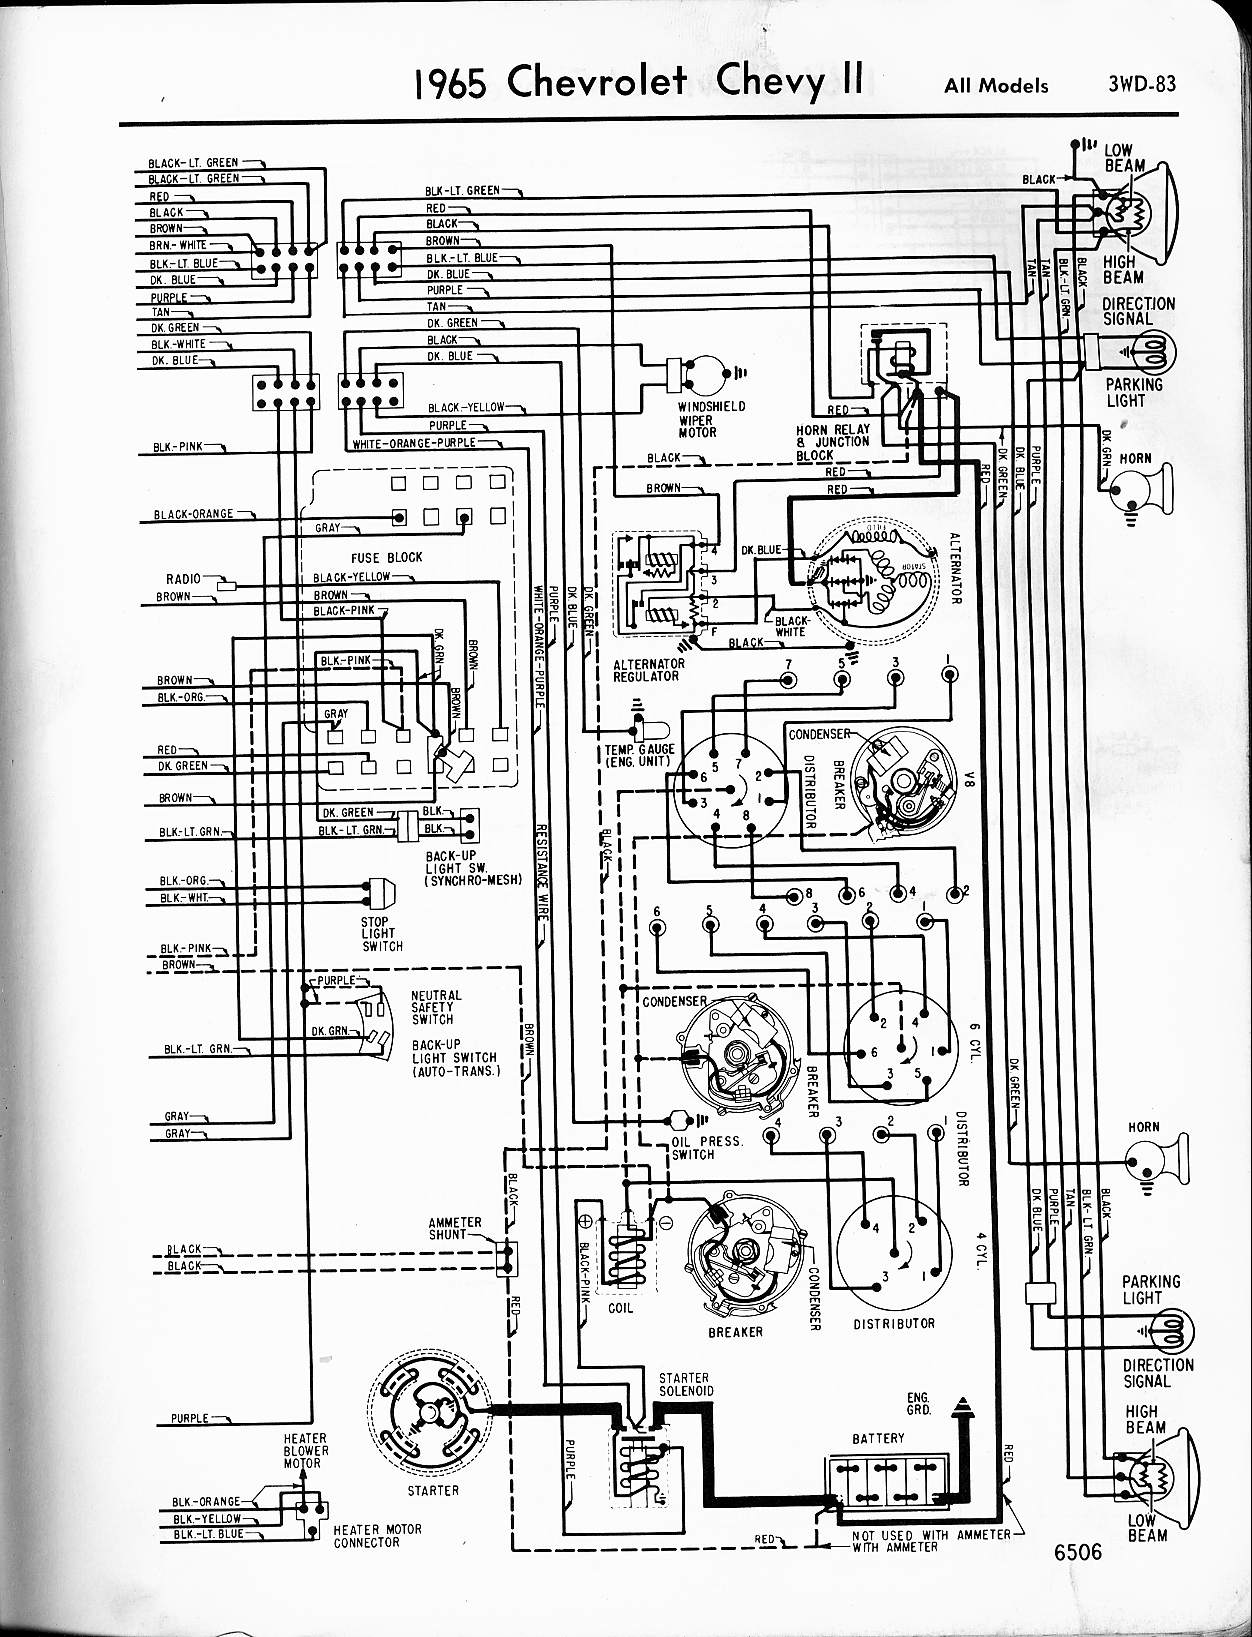 MWireChev65_3WD 083 chevy diagrams 1969 chevy nova wiring diagram at n-0.co